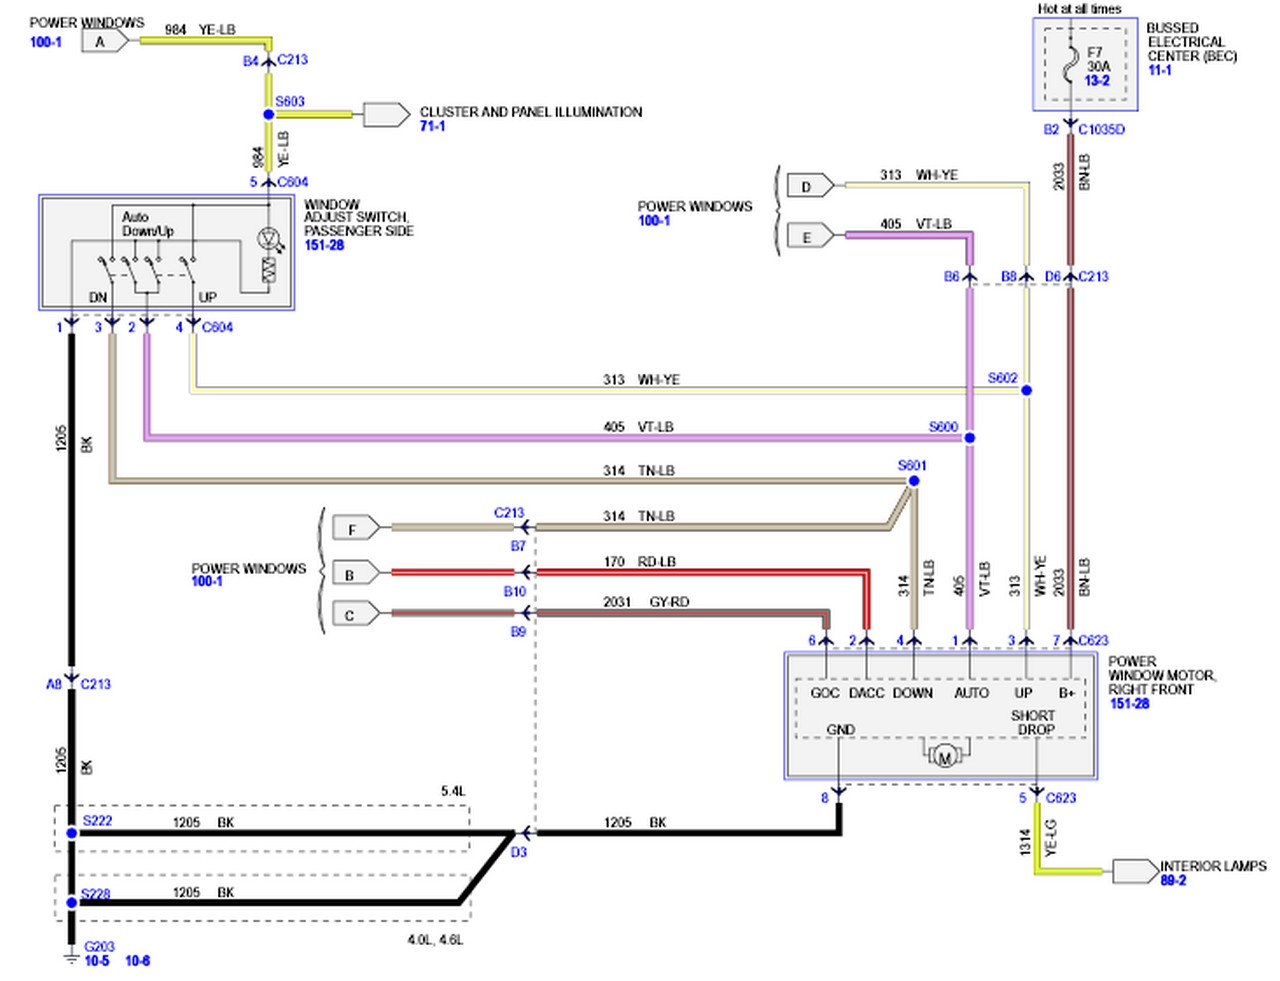 2007 mustang wiring diagram - wiring diagrams auto heat-advice-a -  heat-advice-a.moskitofree.it  moskitofree.it